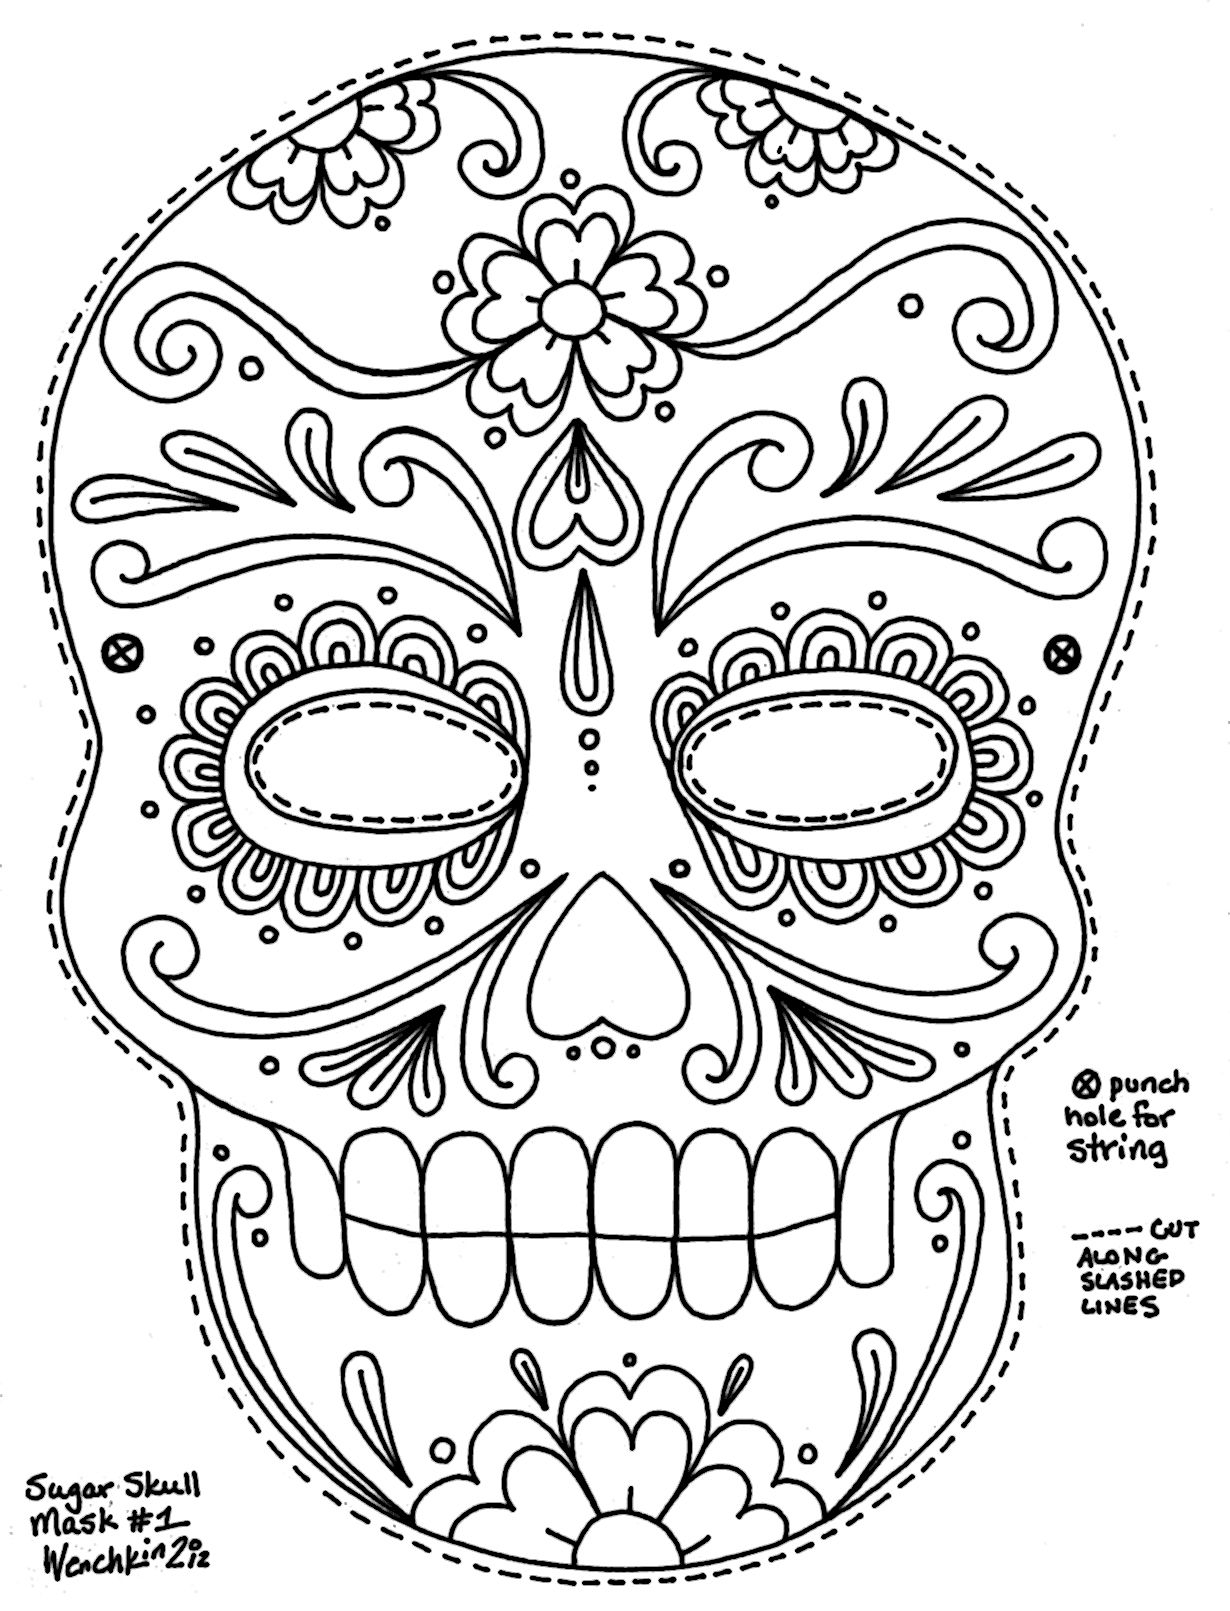 Sugar Skull Coloring Pages To Print Coloring Pages Pinterest